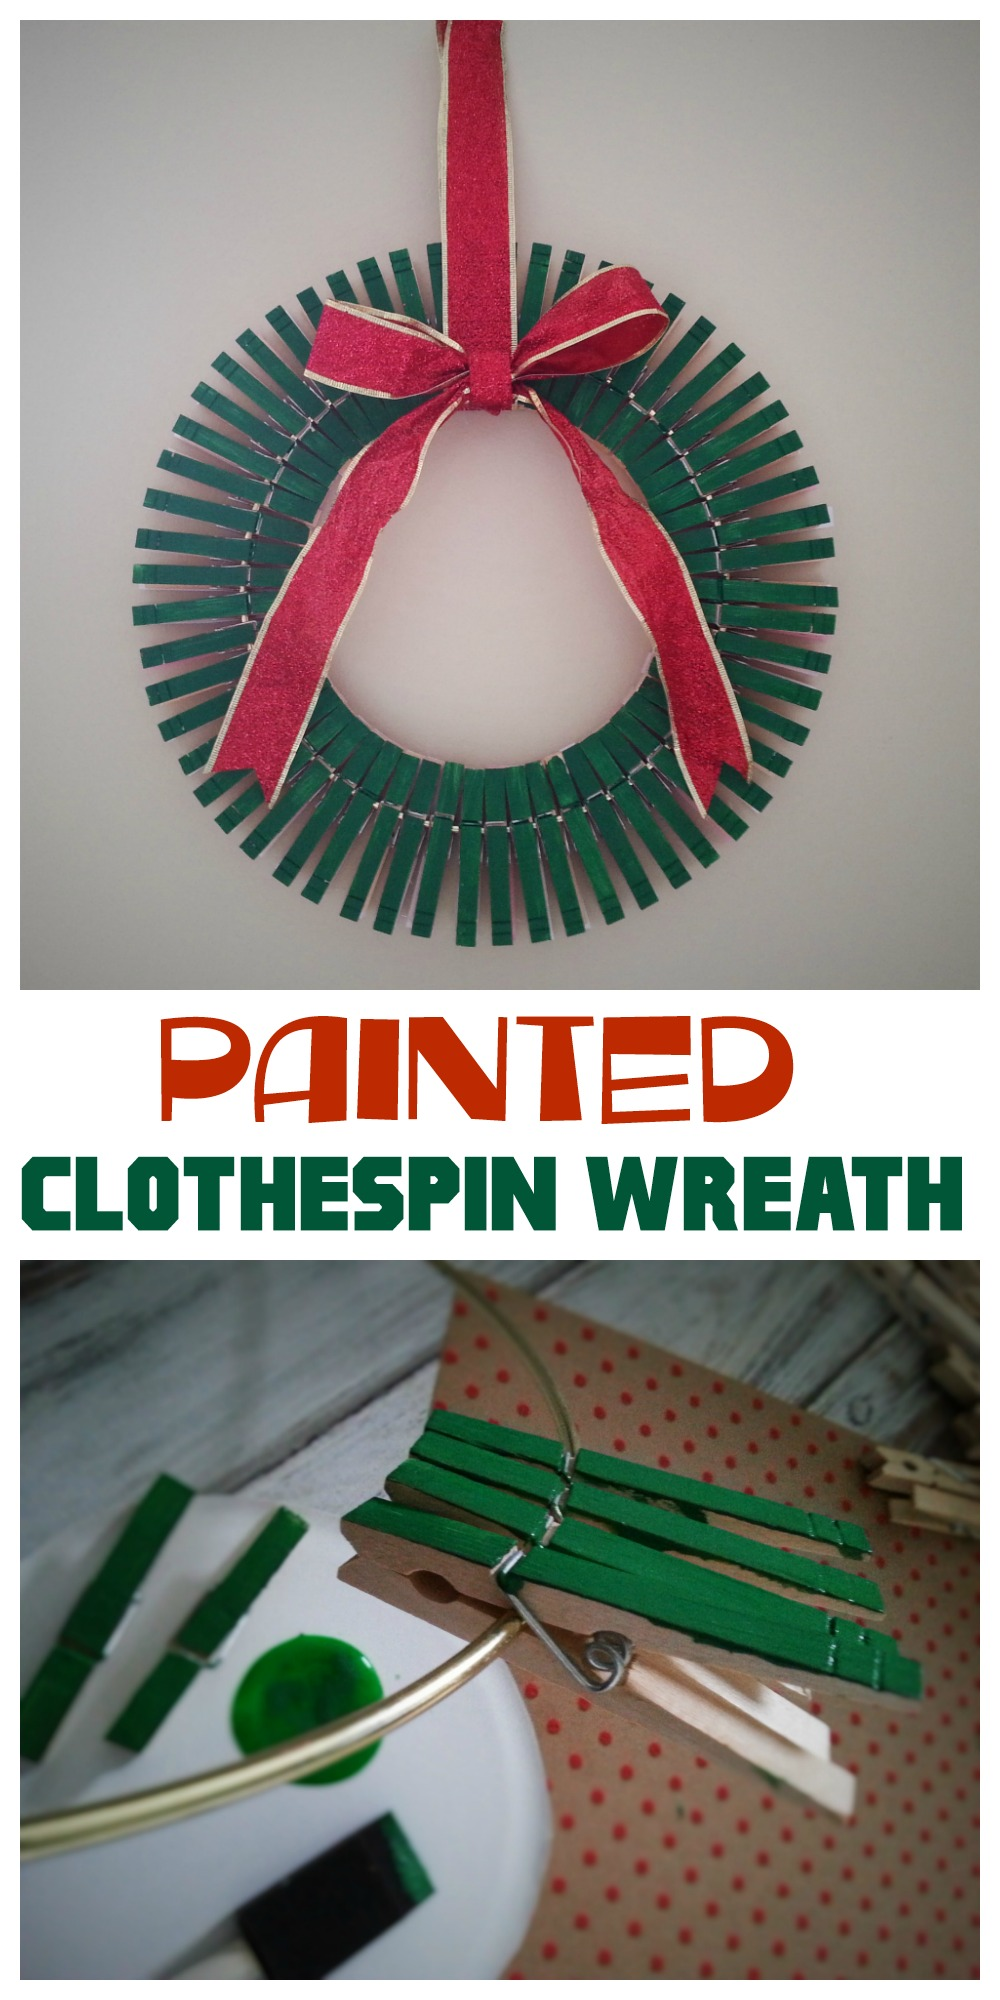 If you are looking for a festive DIY Christmas decoration, try making a Painted Clothespin Wreath! It's easy to make, doesn't cost much & seriously cute.